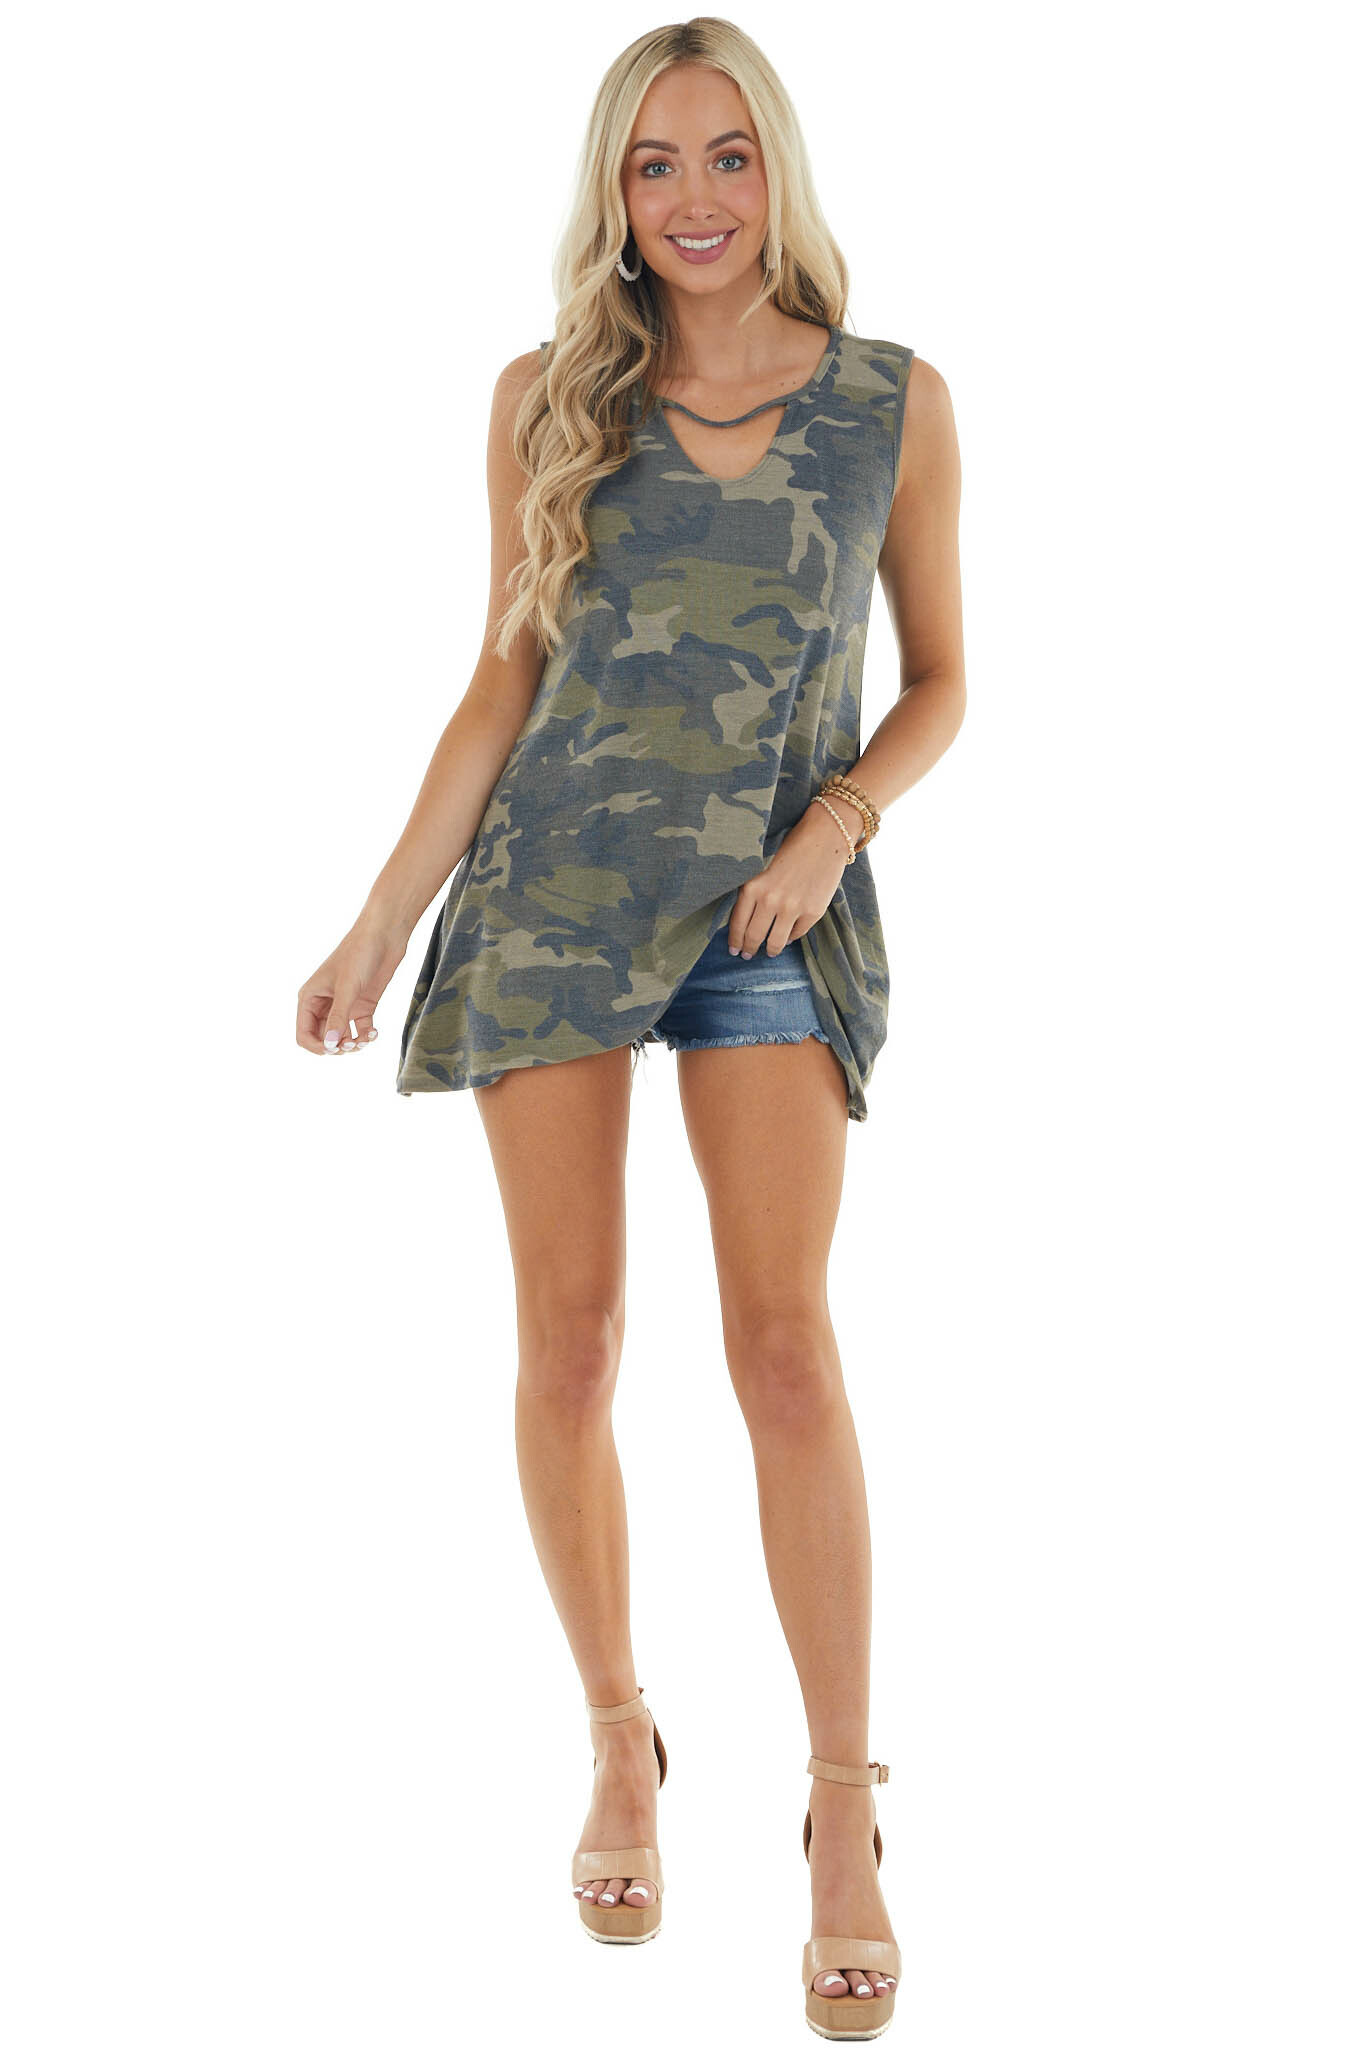 Forest Camo Soft Knit Sleeveless Top with Keyhole Details